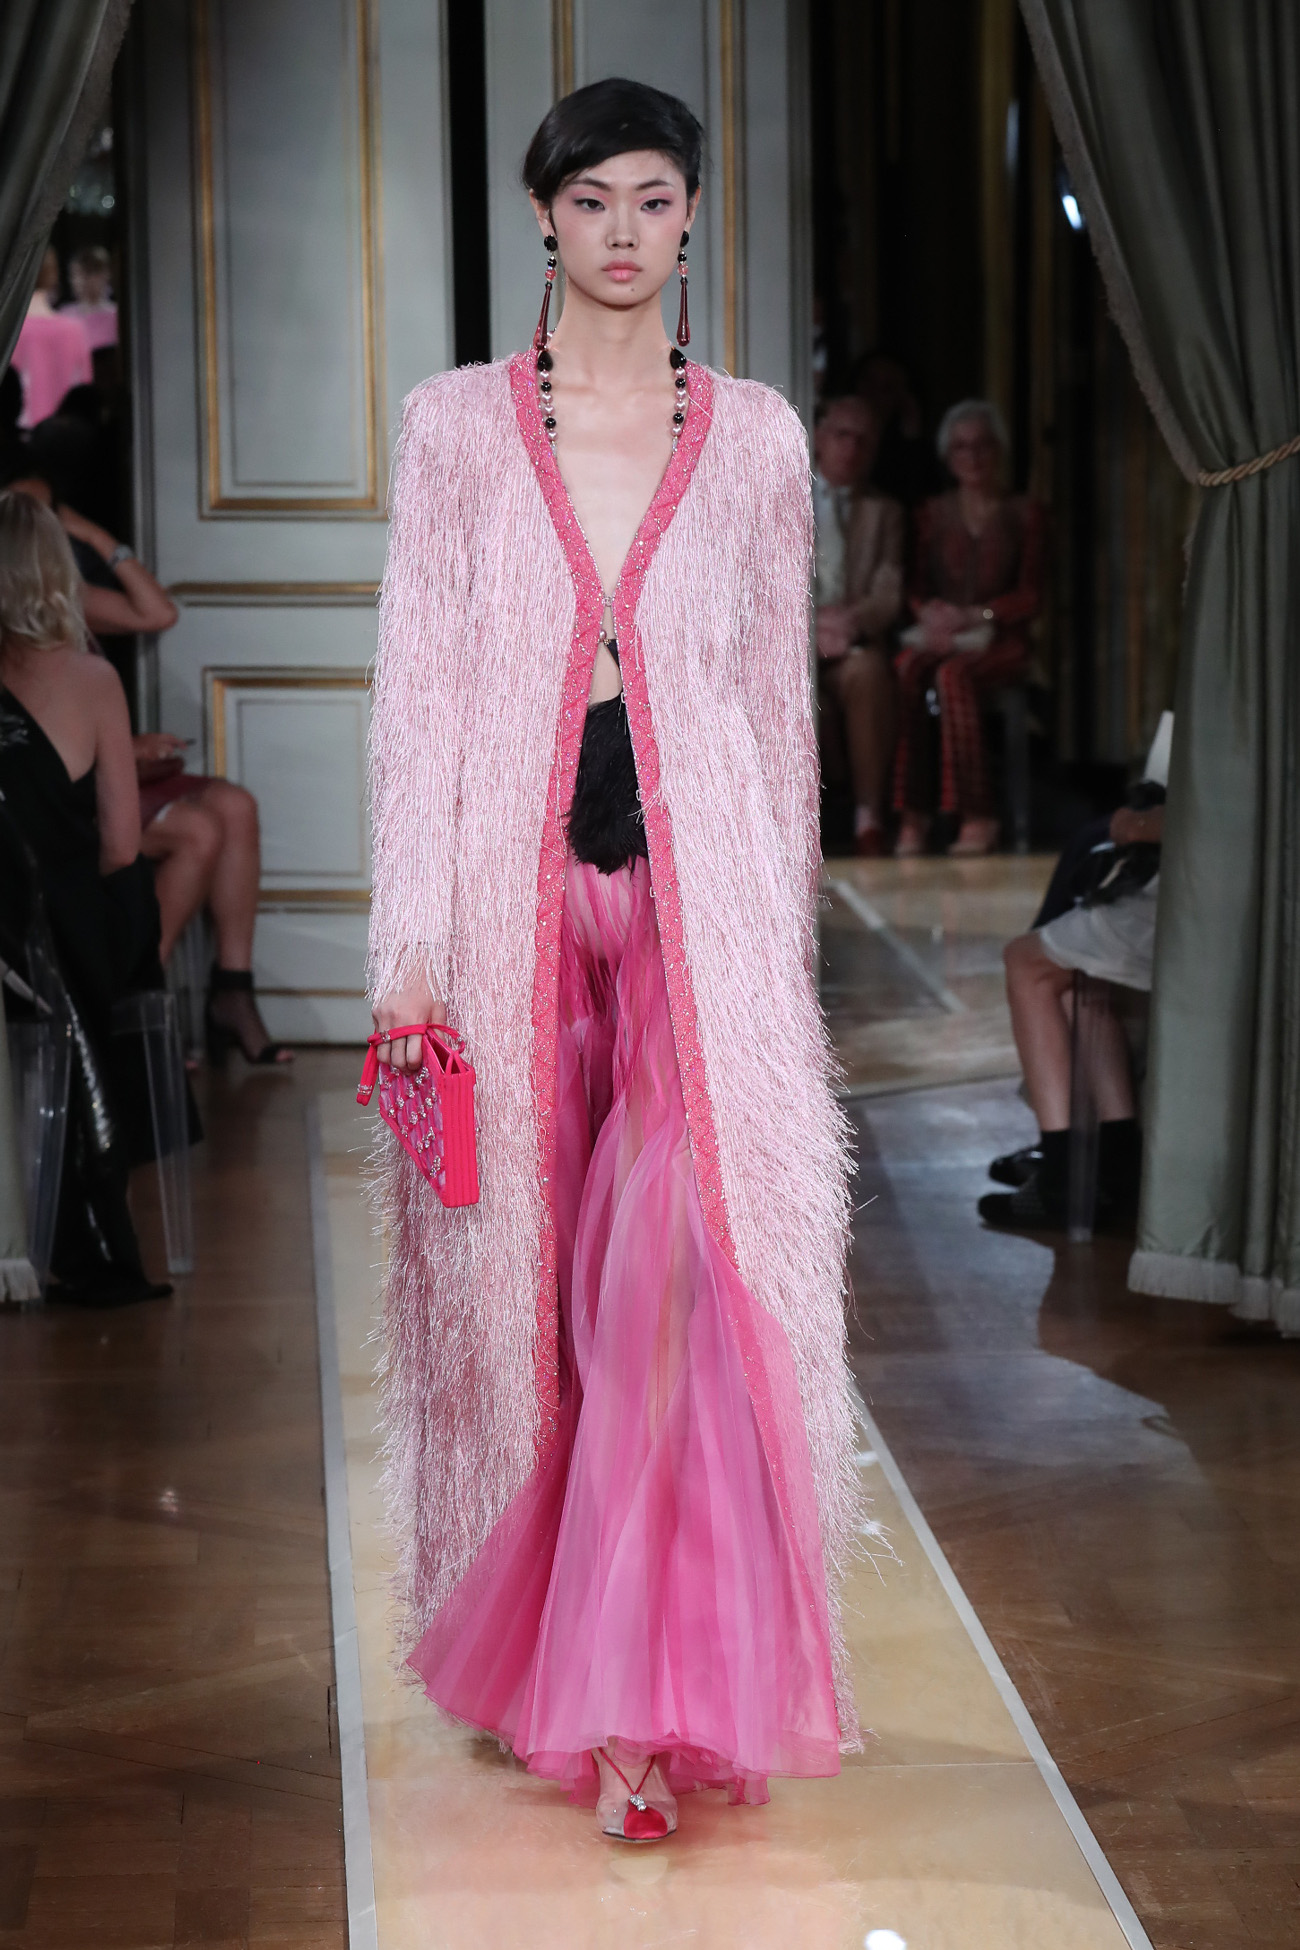 A model walks the runway during the Giorgio Armani Prive Haute Couture Fall/Winter 2018-2019 show as part of Haute Couture Paris Fashion Week on July 3, 2018 in Paris, France.  Pictured:  Ref: SPL5007983 030718 NON-EXCLUSIVE Picture by: Antonio Barros / SplashNews.com  Splash News and Pictures Los Angeles: 310-821-2666 New York: 212-619-2666 London: 0207 644 7656 Milan: +39 02 4399 8577 Sydney: +61 02 9240 7700 photodesk@splashnews.com  World Rights